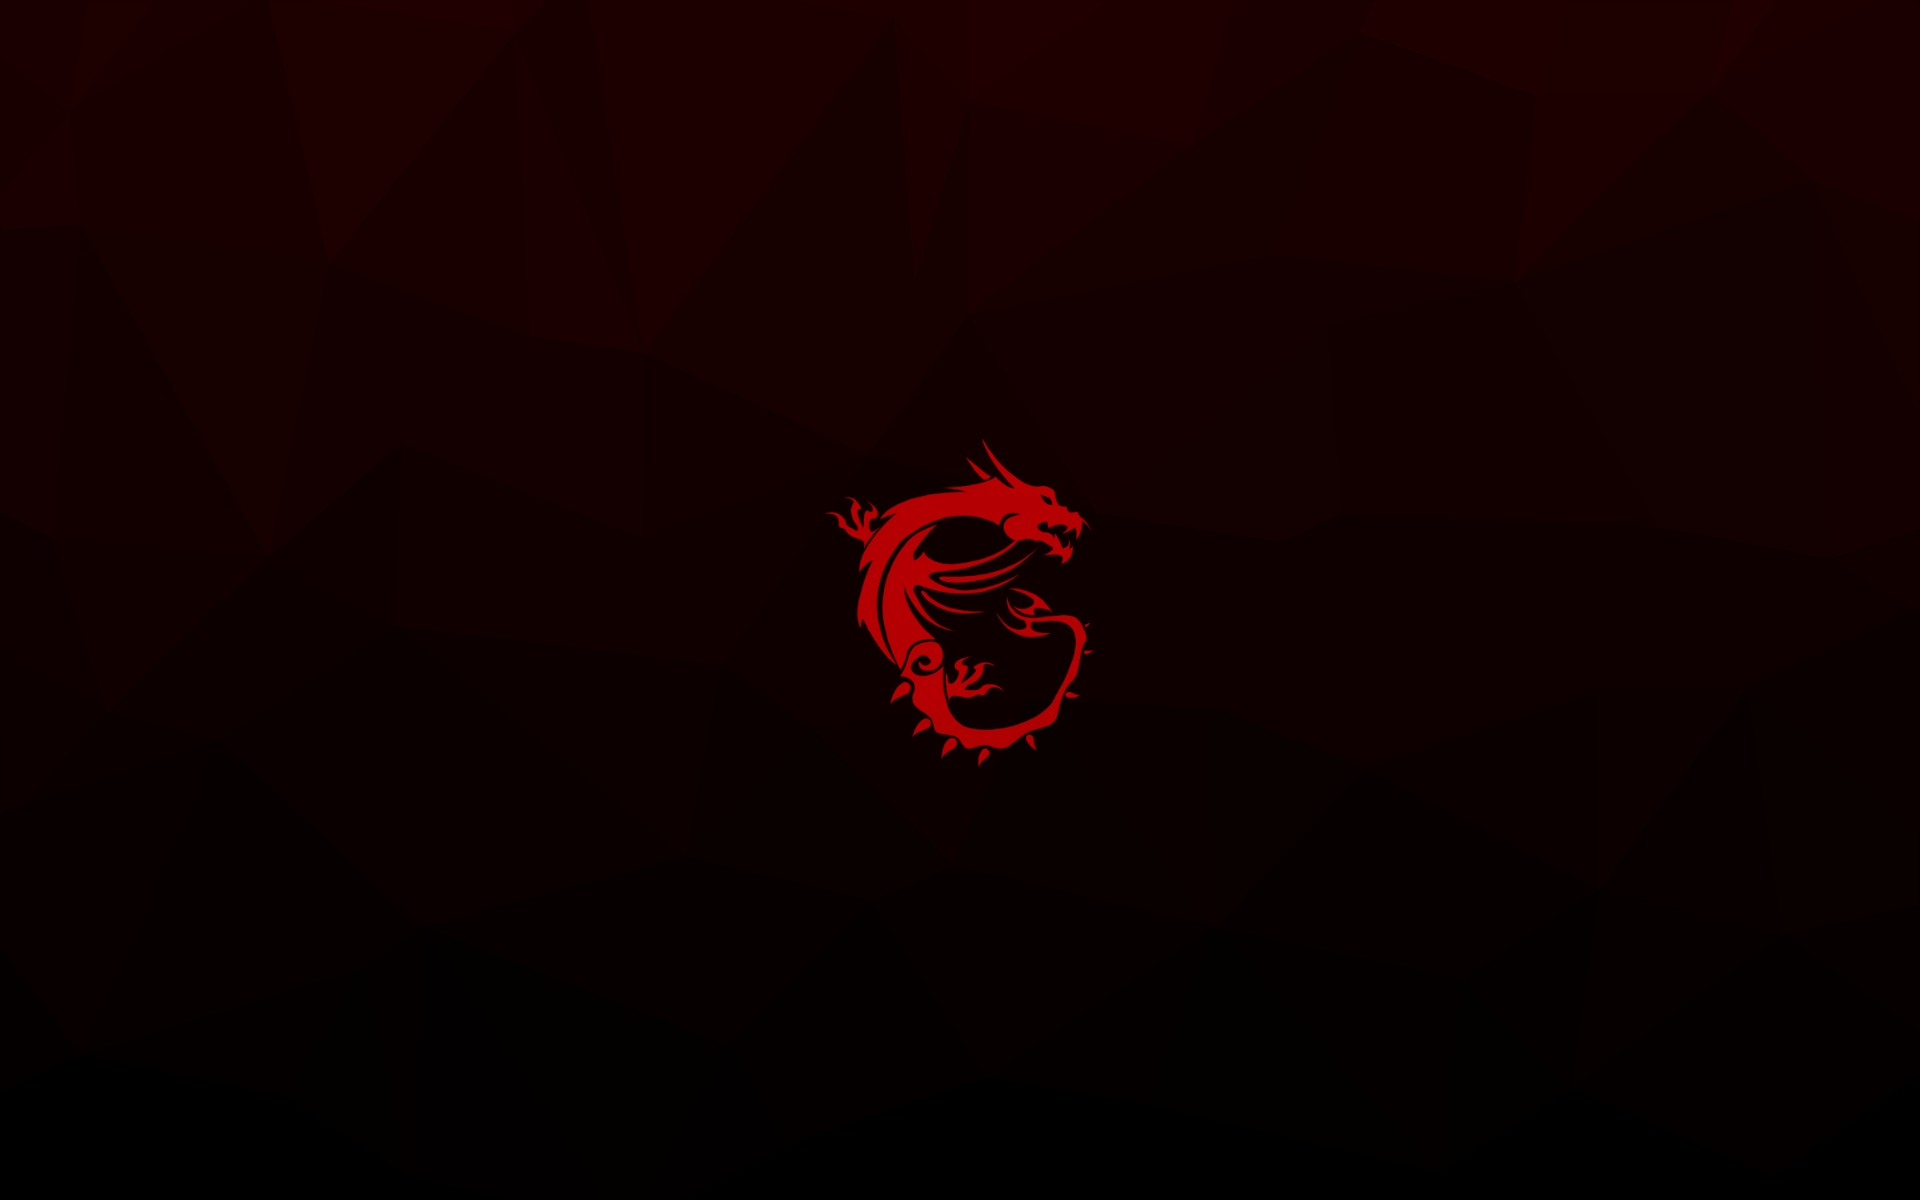 Msi background download free stunning high resolution wallpapers for desktop and mobile - Msi logo wallpaper ...